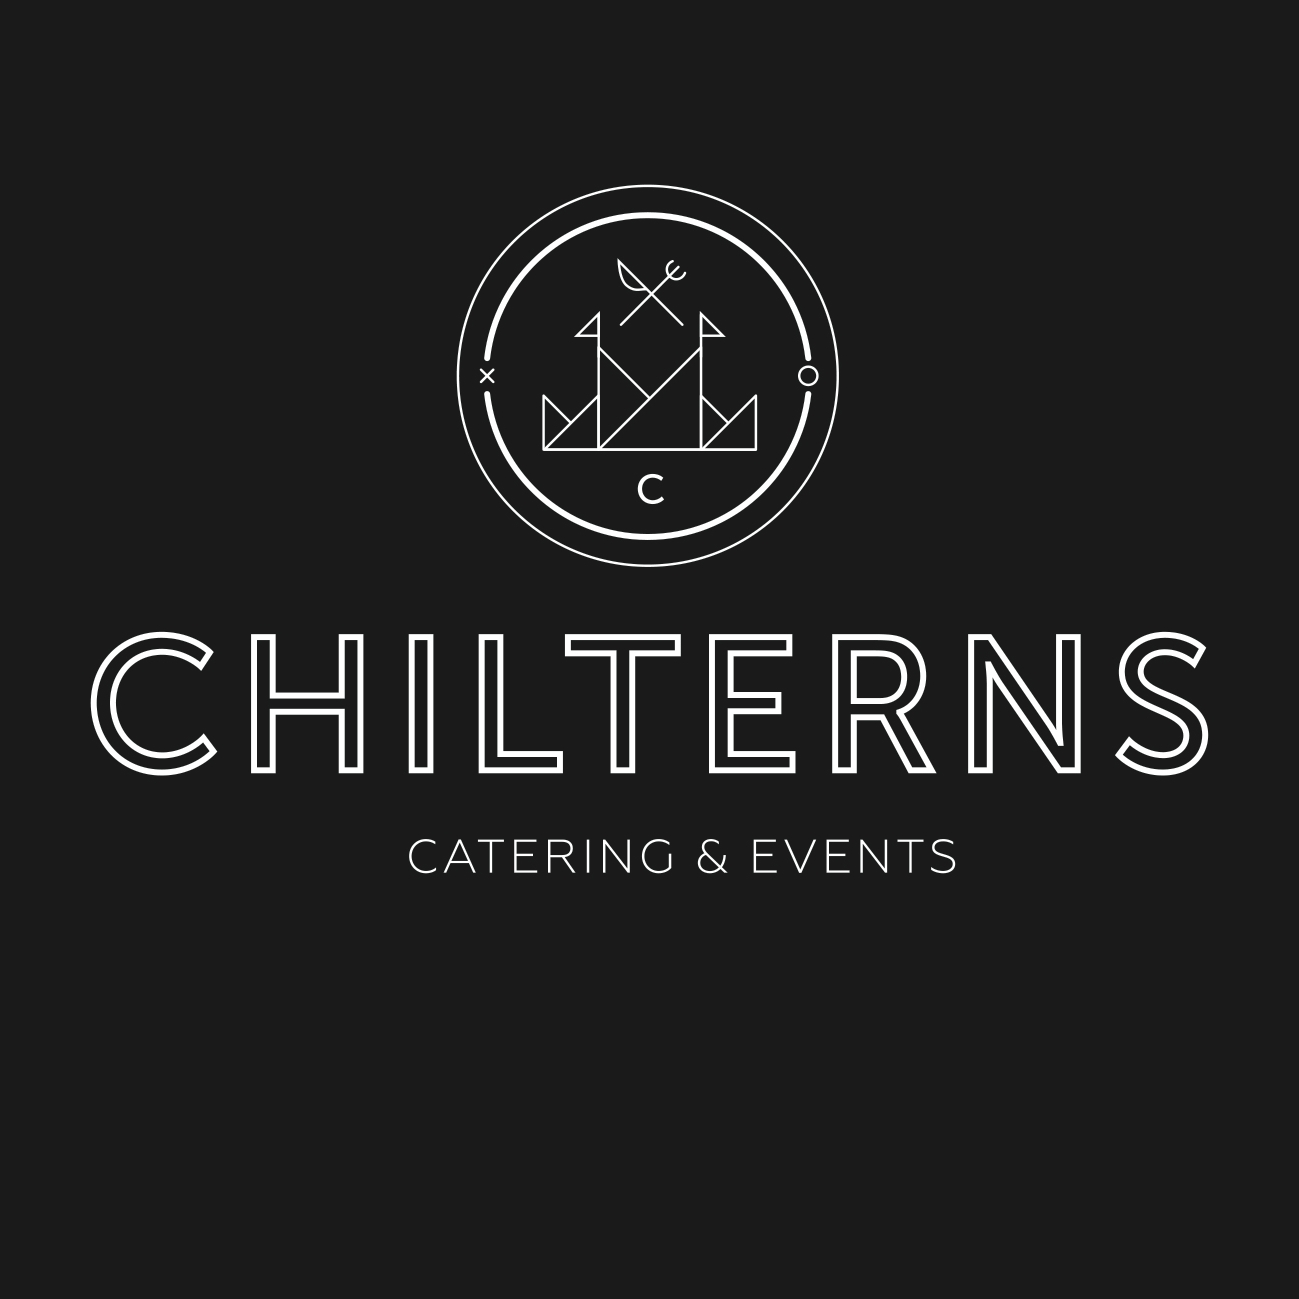 Chilterns Catering